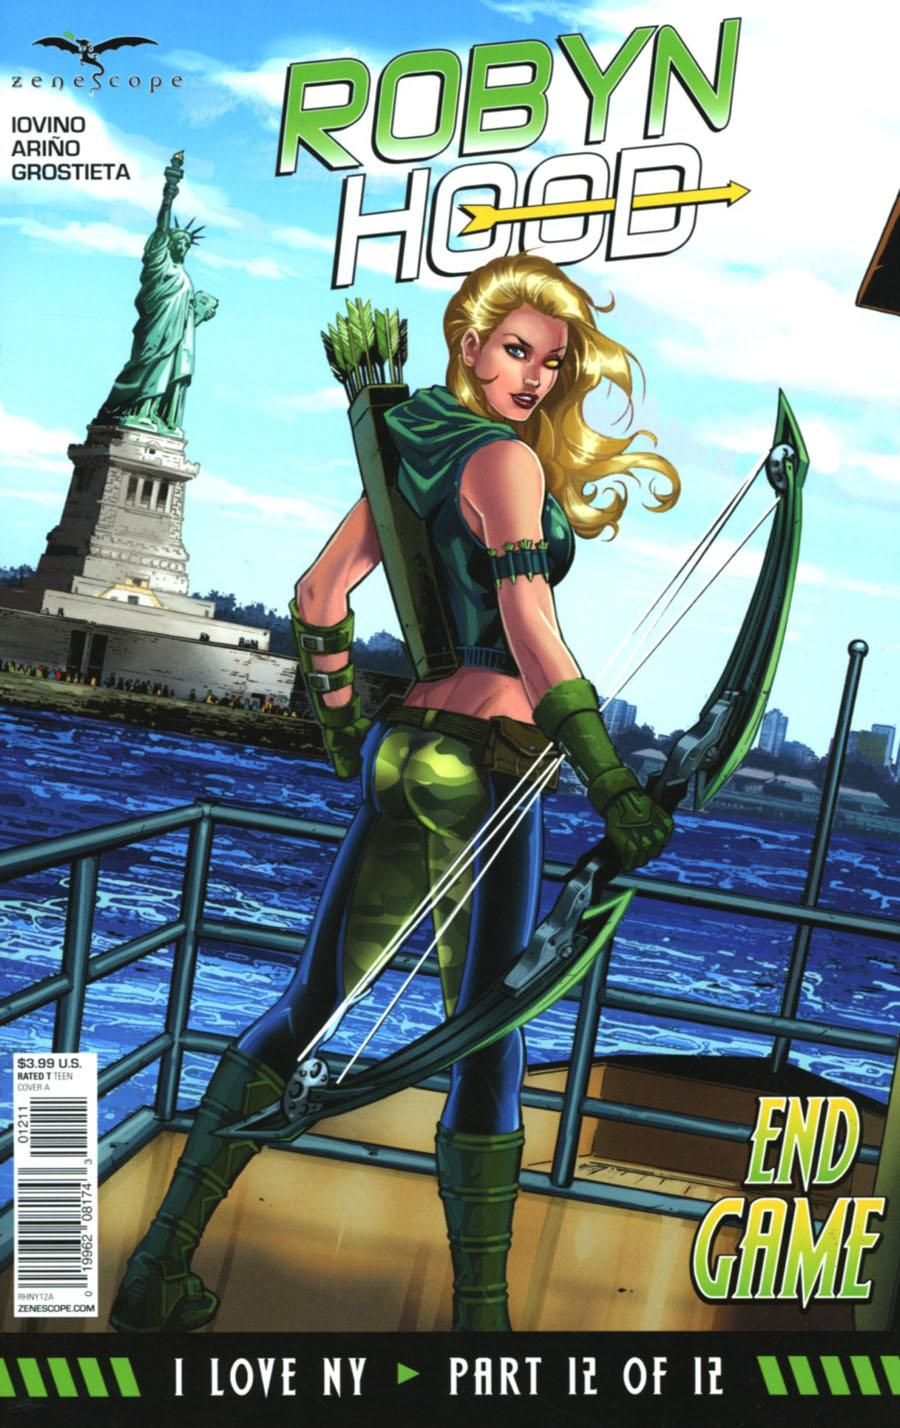 Grimm Fairy Tales Presents Robyn Hood I Love NY Vol. 1 #12